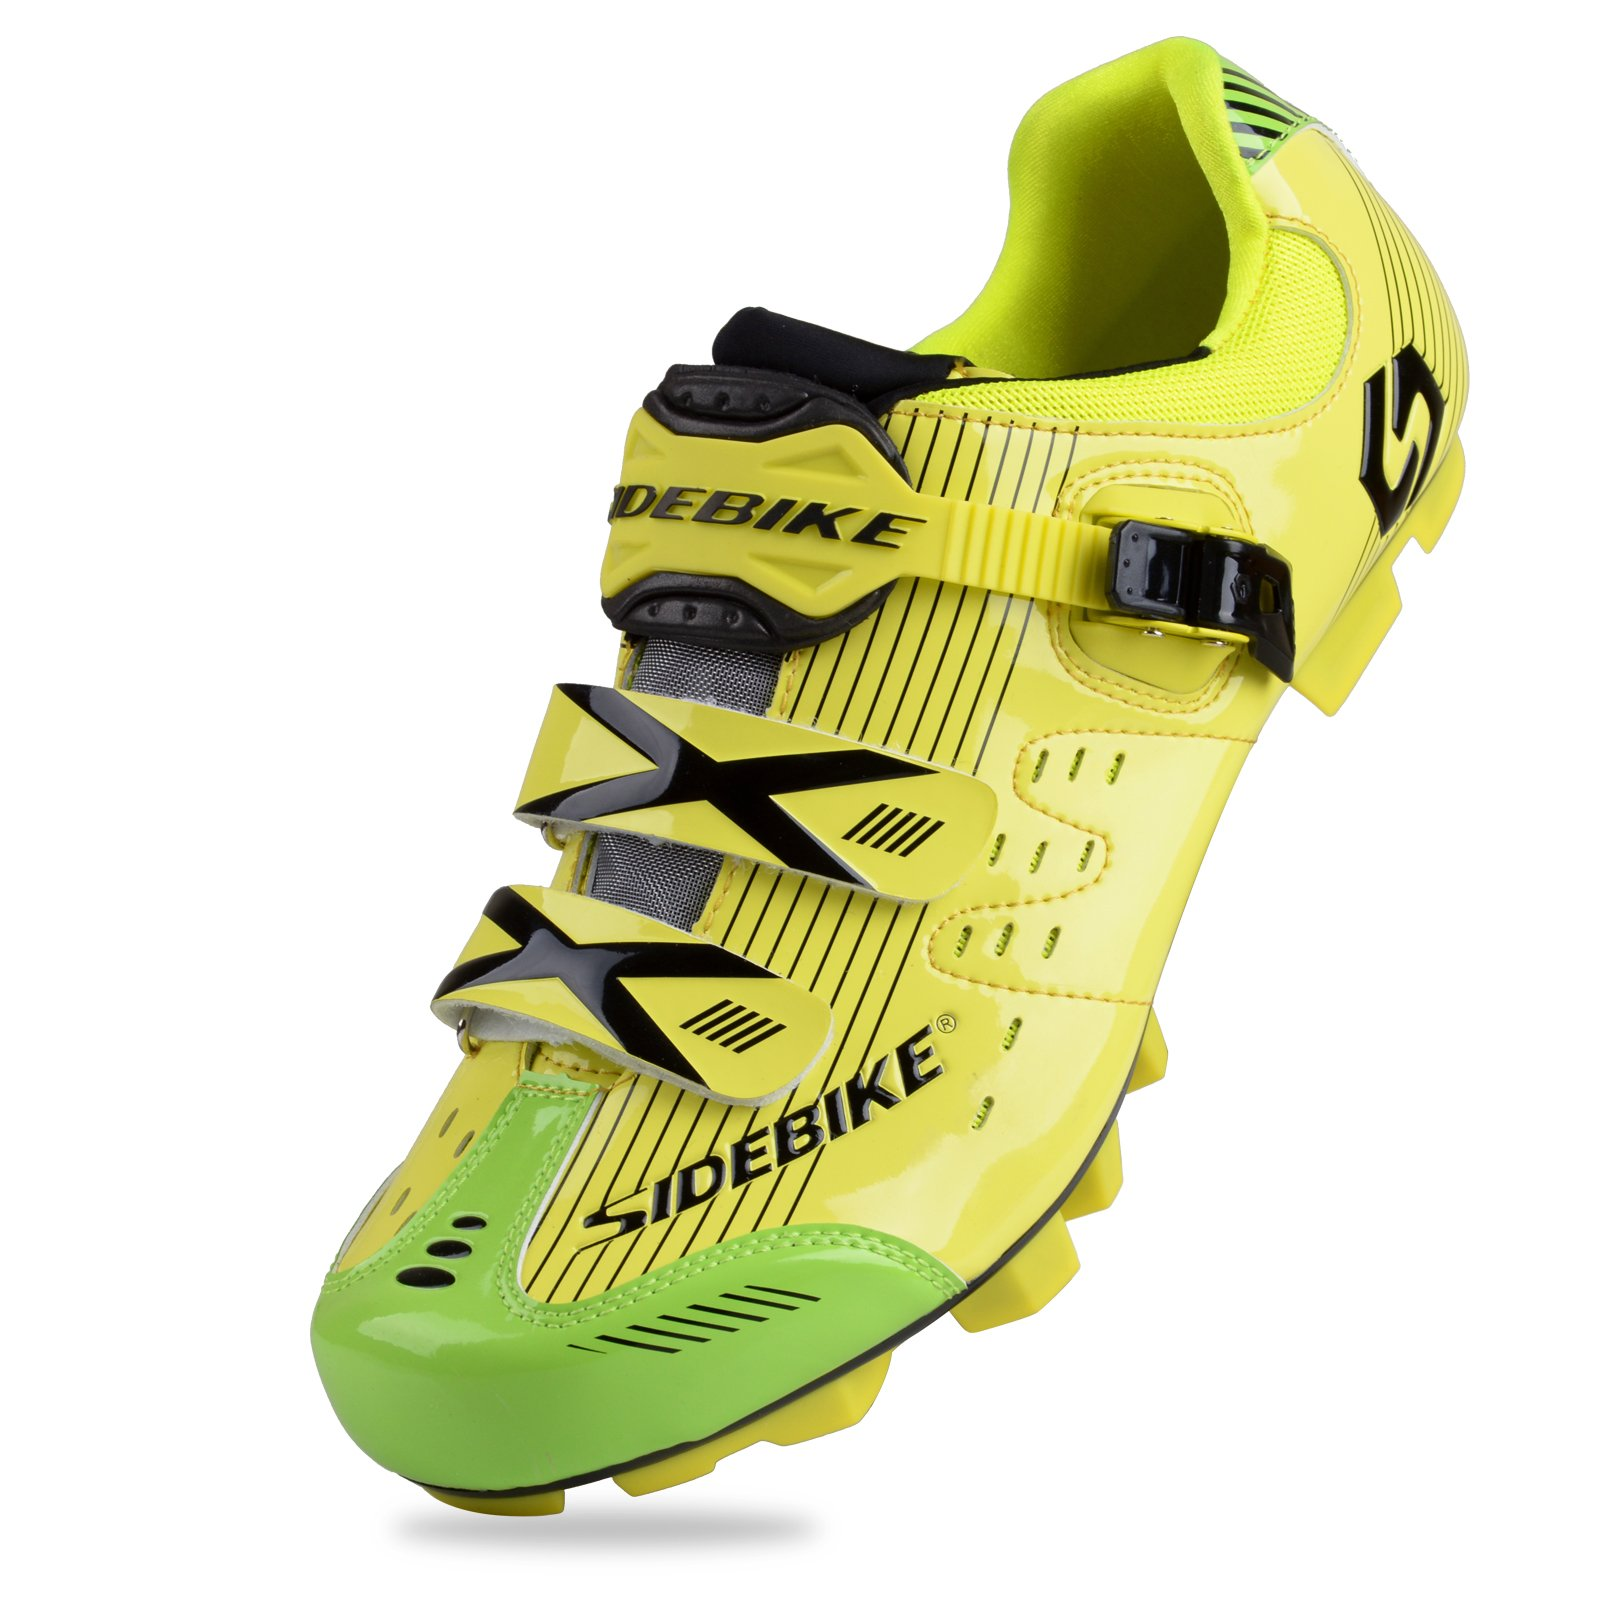 Smartodoors Women's Men's All-Road and MTB II Cycling Shoes(Yellow for MTB, US11/EU44/Ft27.5cm)